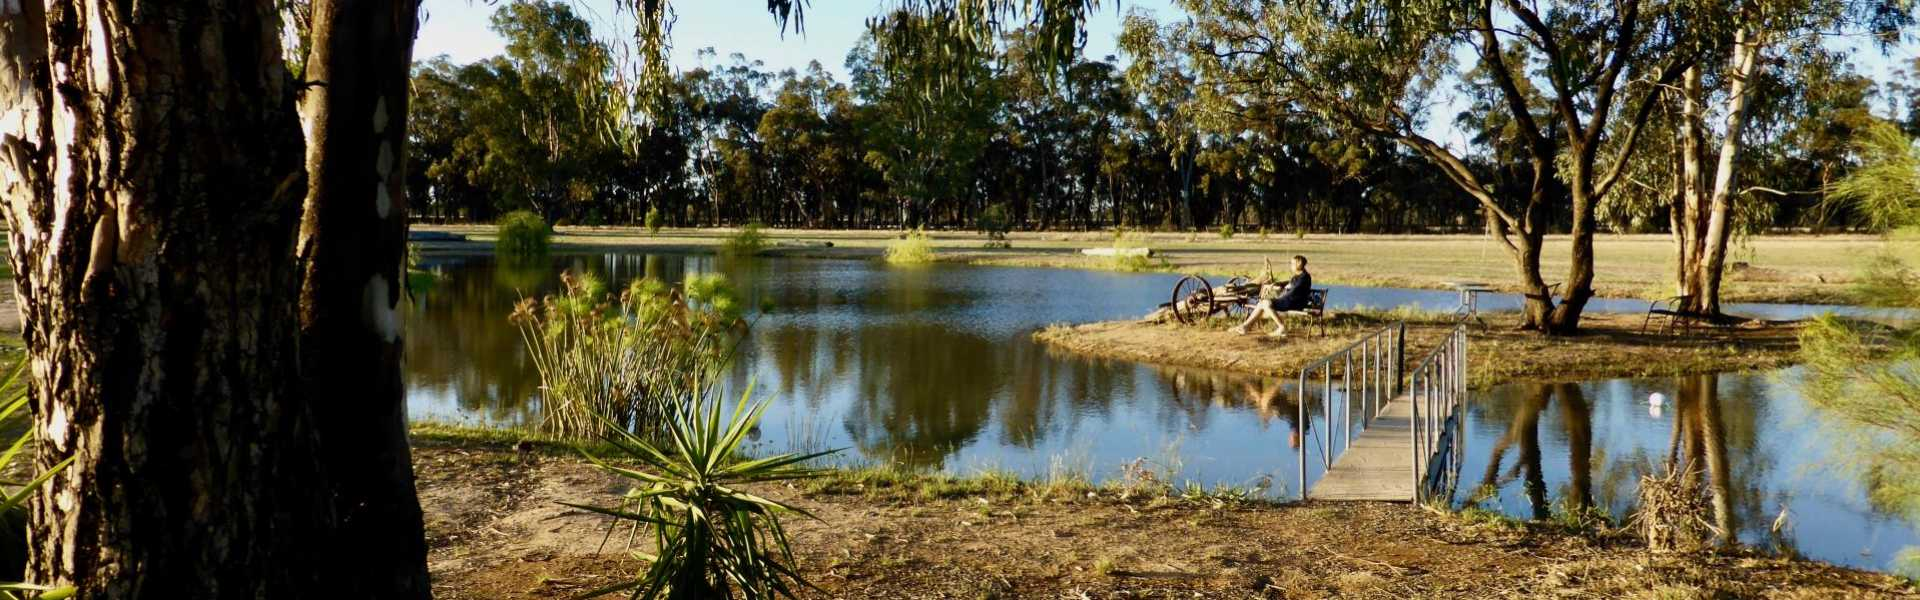 Kui Parks, Cocobend Caravan and Camping Grounds, Moama, Dam